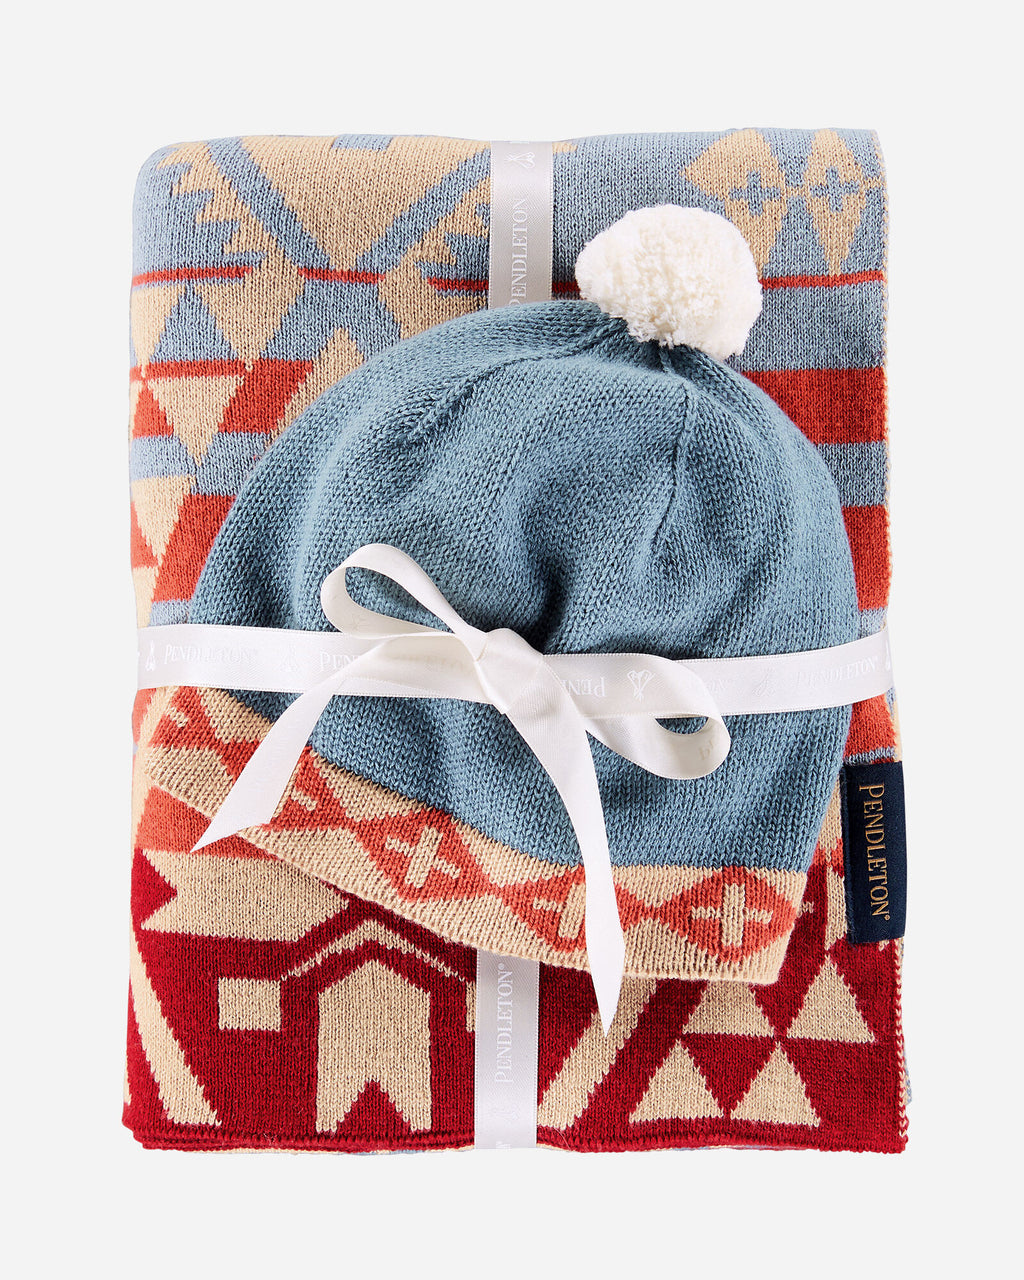 PENDLETON - KNIT BABY BLANKET with BEANIE -Canyonlands